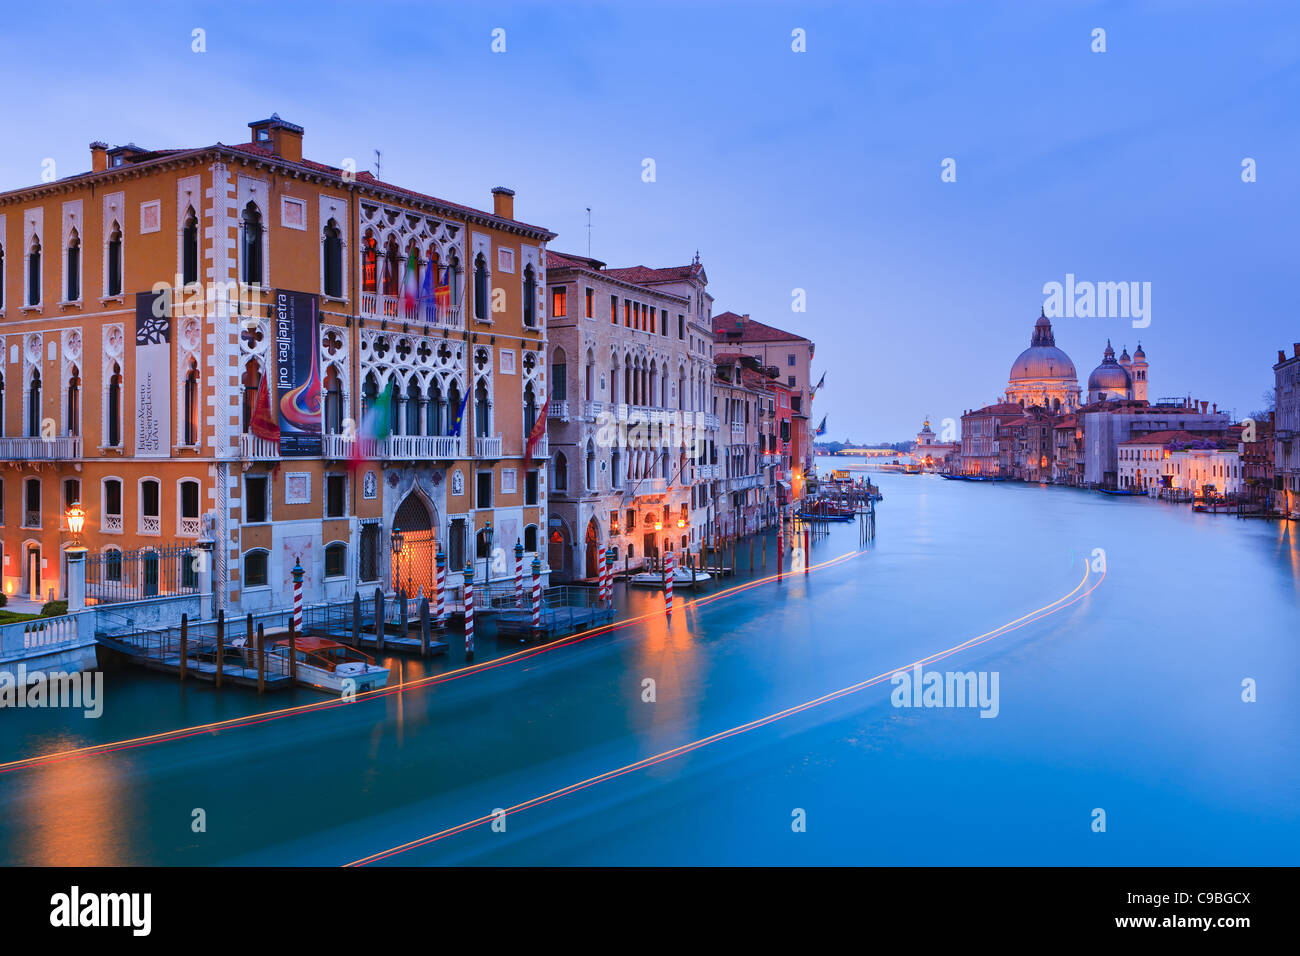 Sunset in Venice from the Accademia Bridge with the view on the Grand Canal - Stock Image